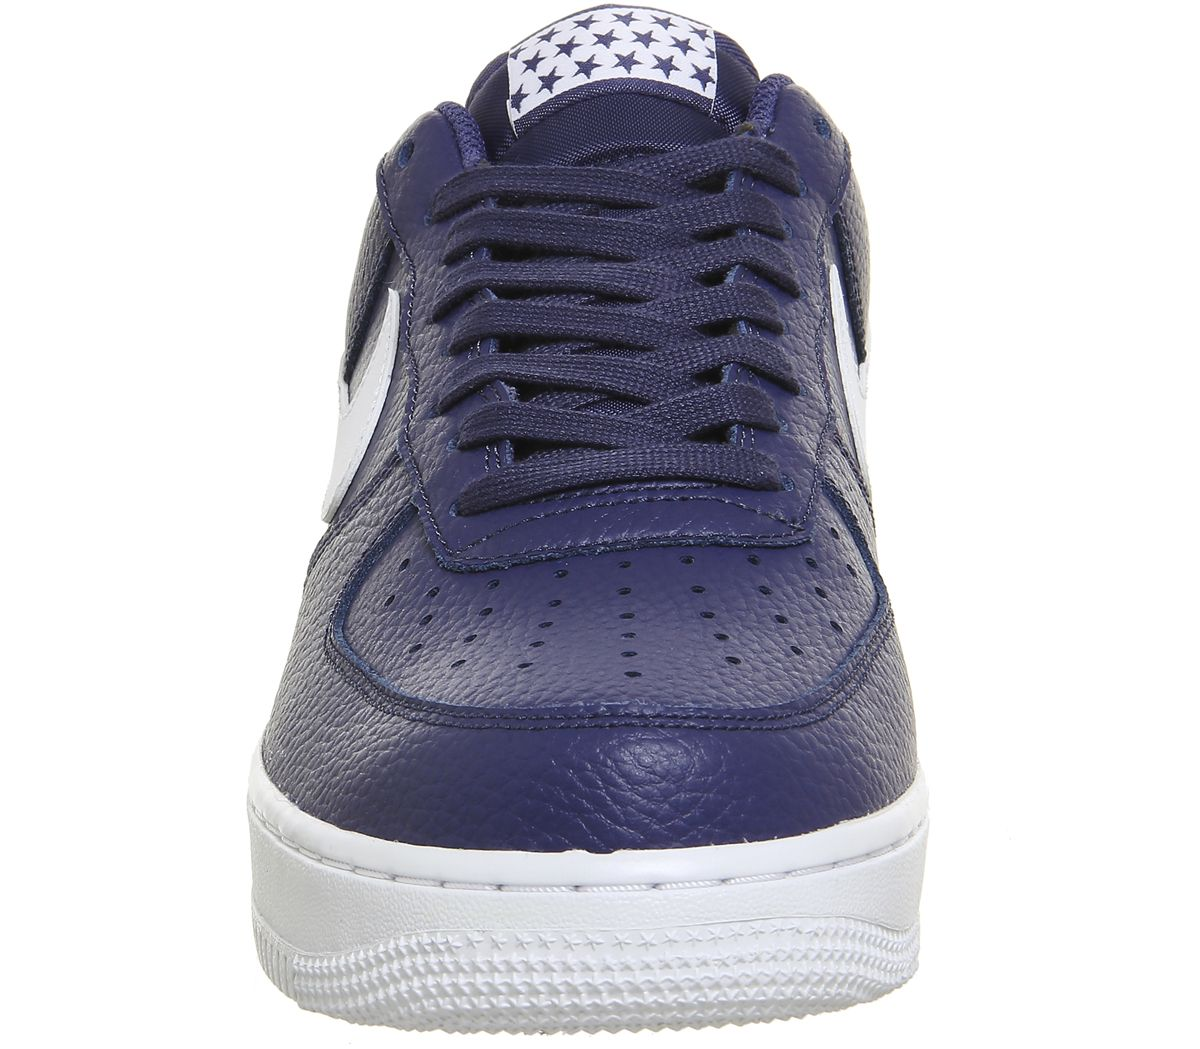 sports shoes 9d43b c344a Air Force 1 07 Trainers